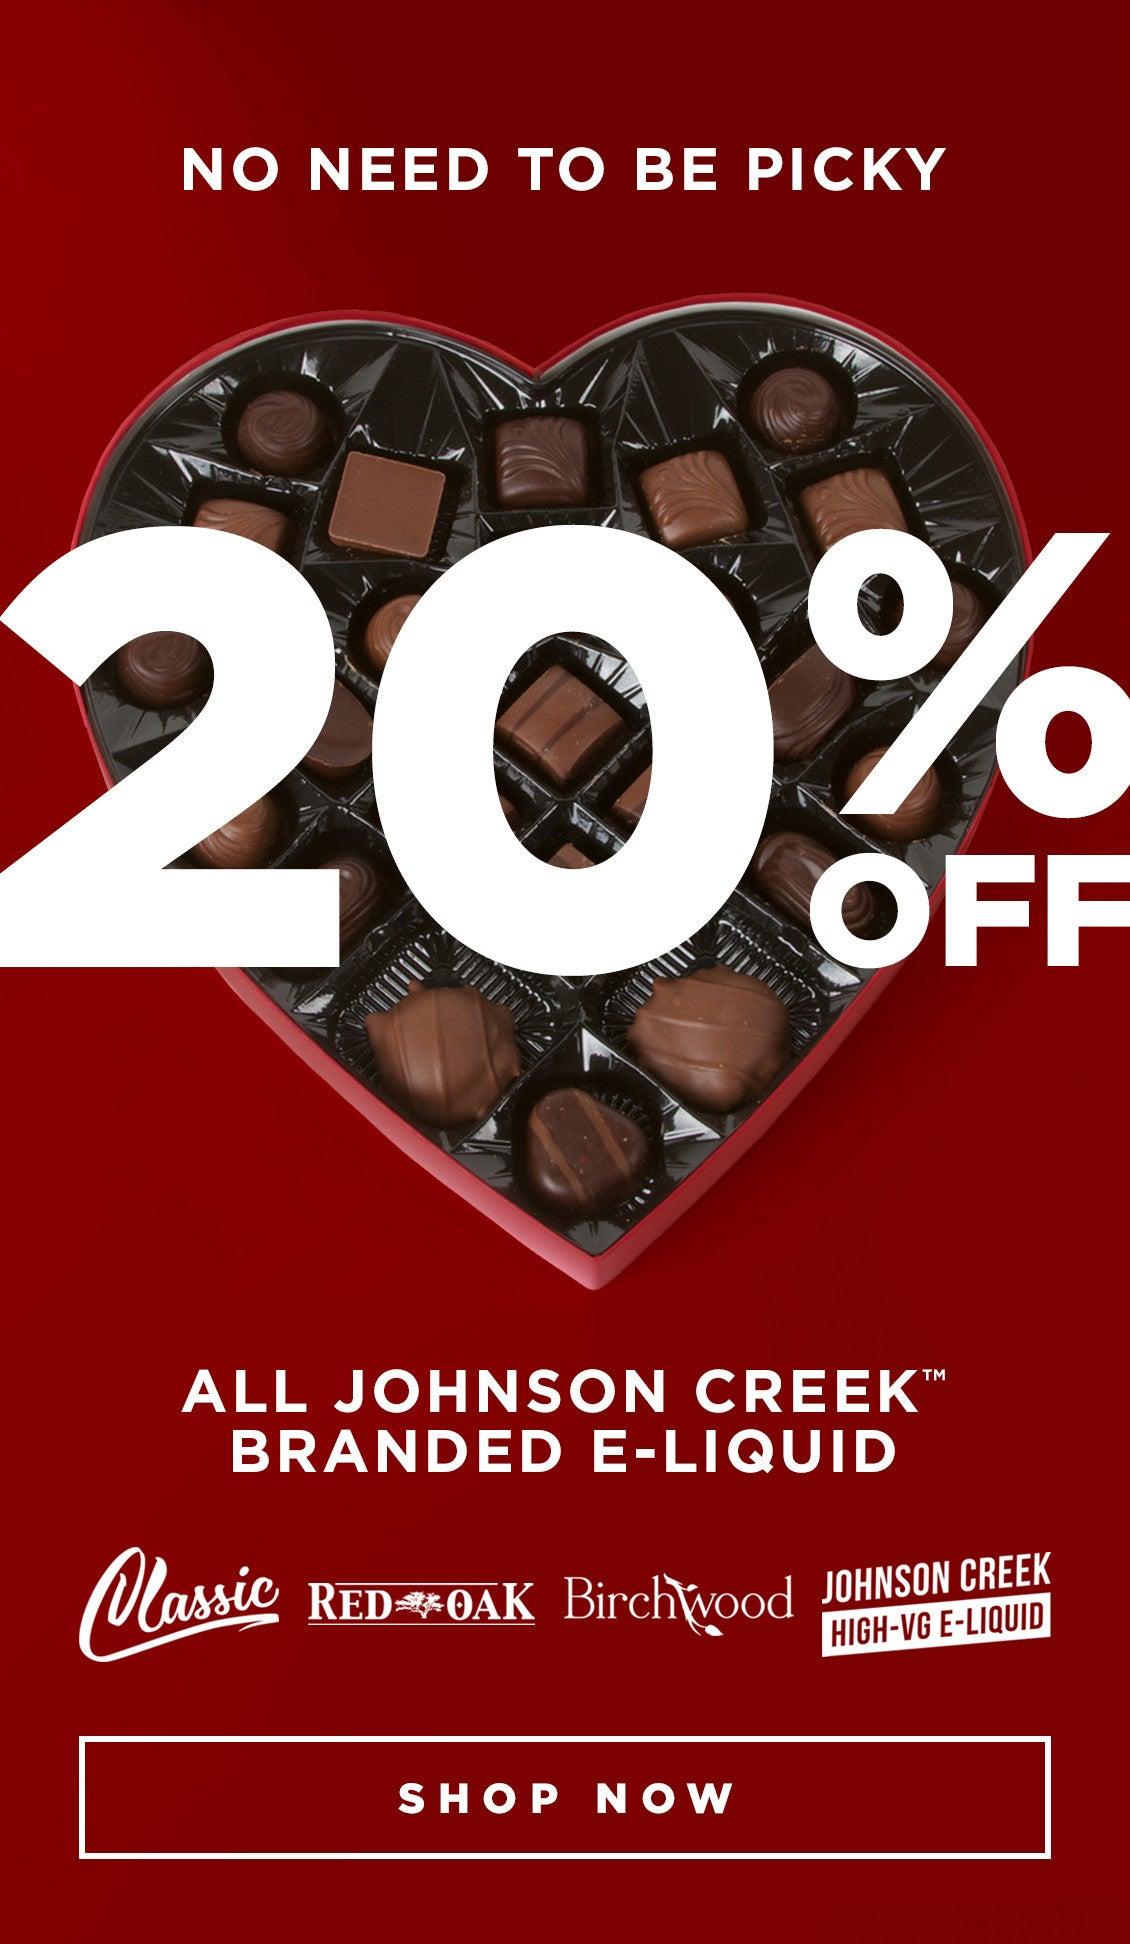 20% off all Johnson Creek branded e-liquid. Shop now: